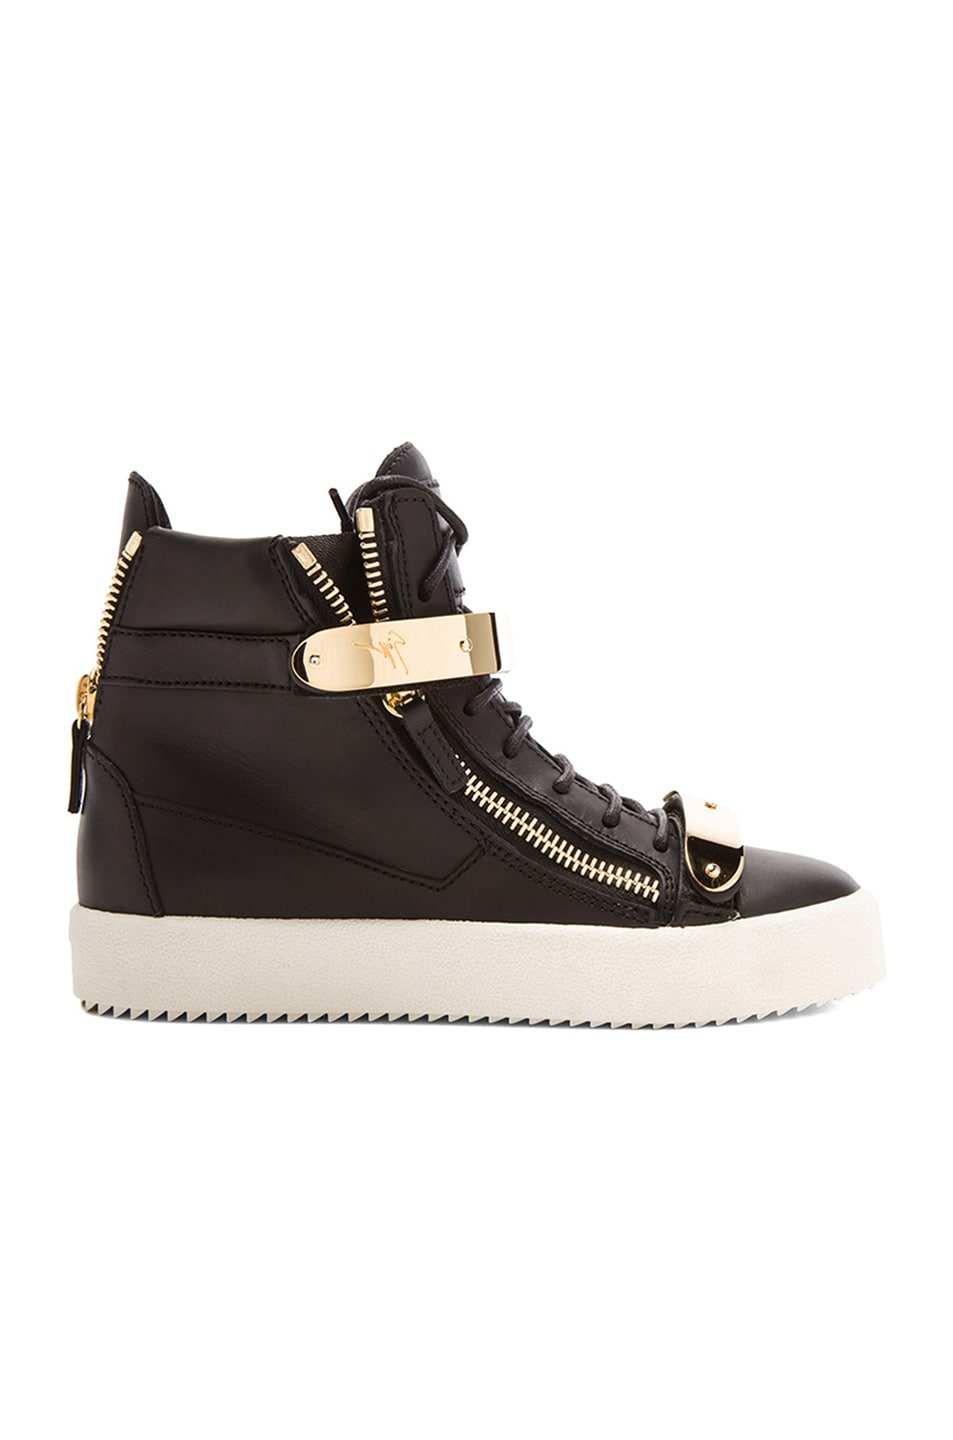 Image 1 of Giuseppe Zanotti Leather Bucked Sneakers in Black